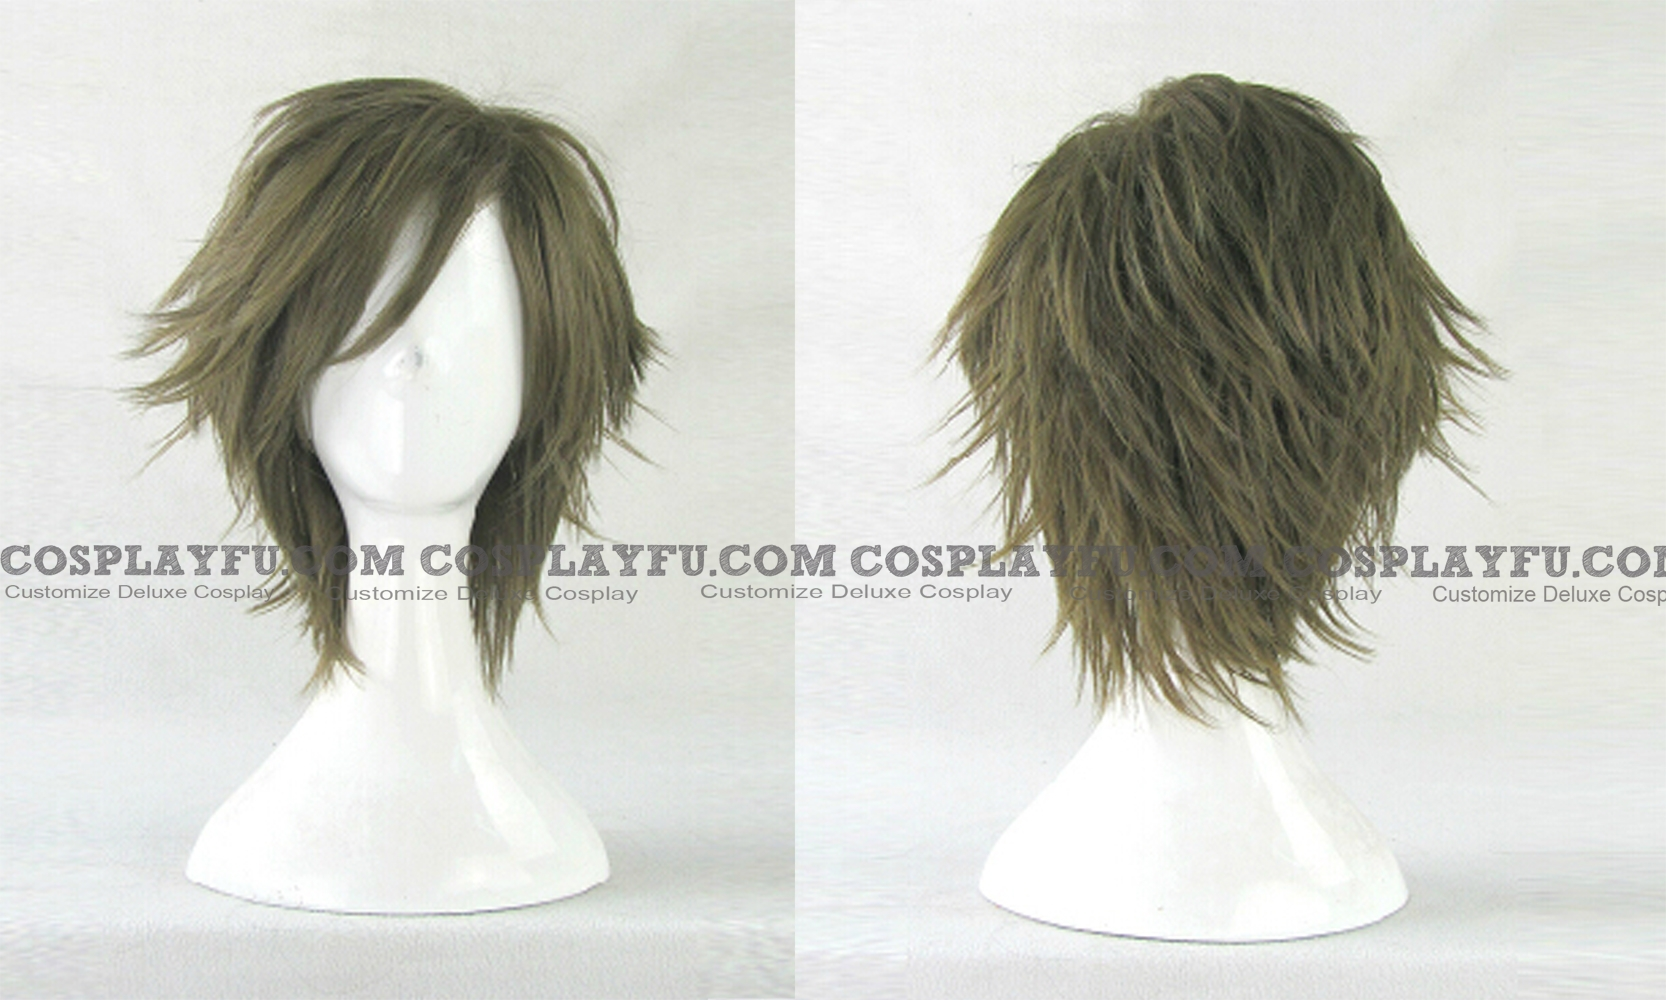 Tezuka Wig from Prince of Tennis